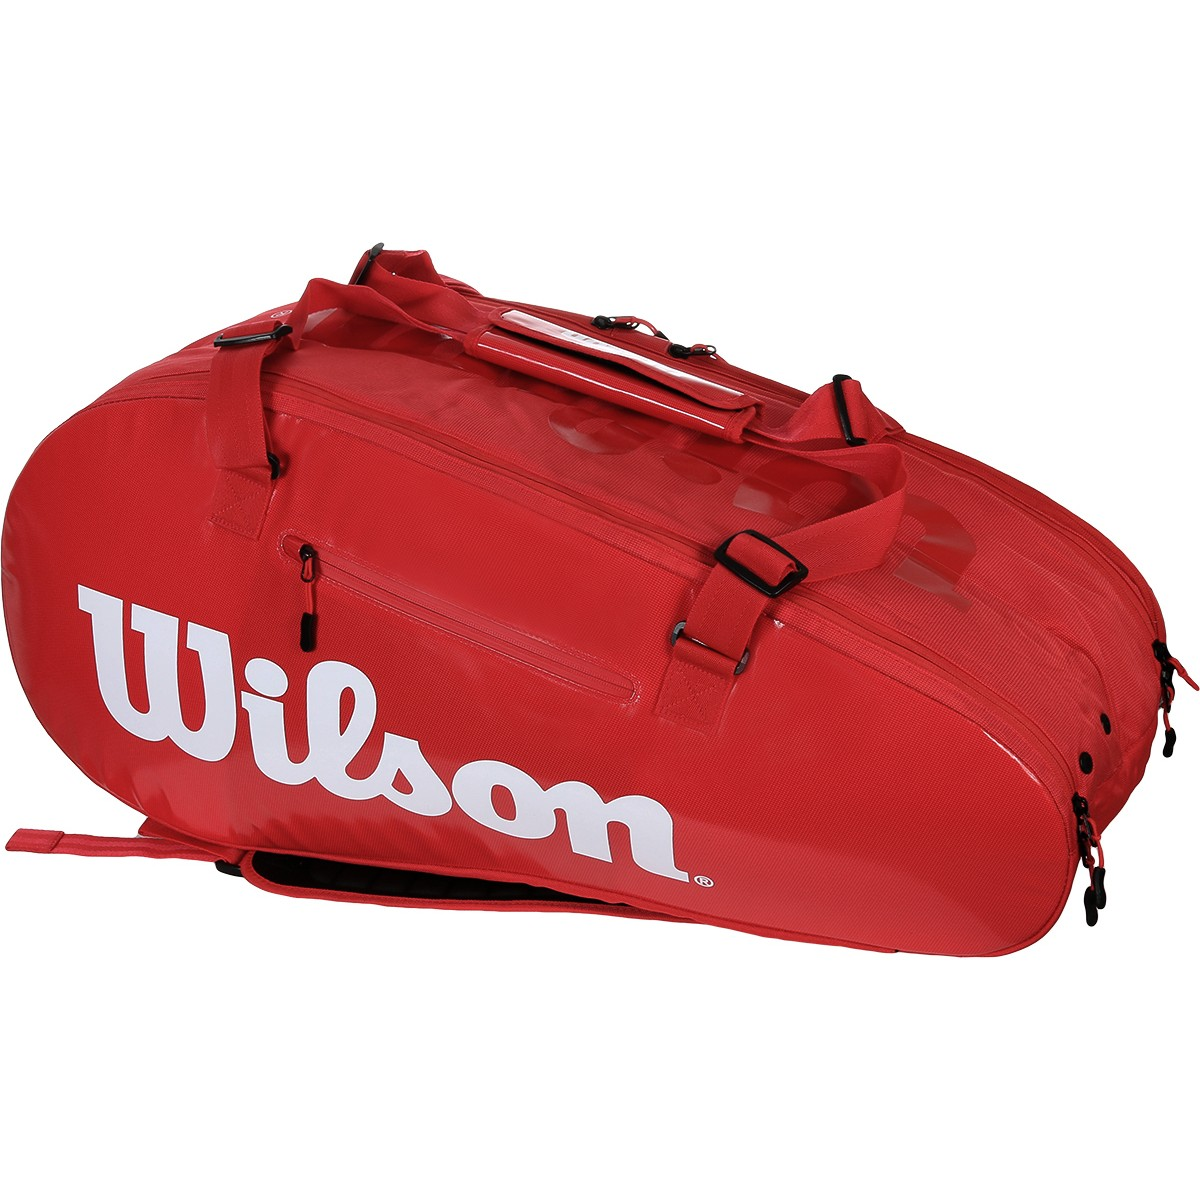 SAC DE TENNIS WILSON SUPER TOUR INFRARED 2 COMP LARGE